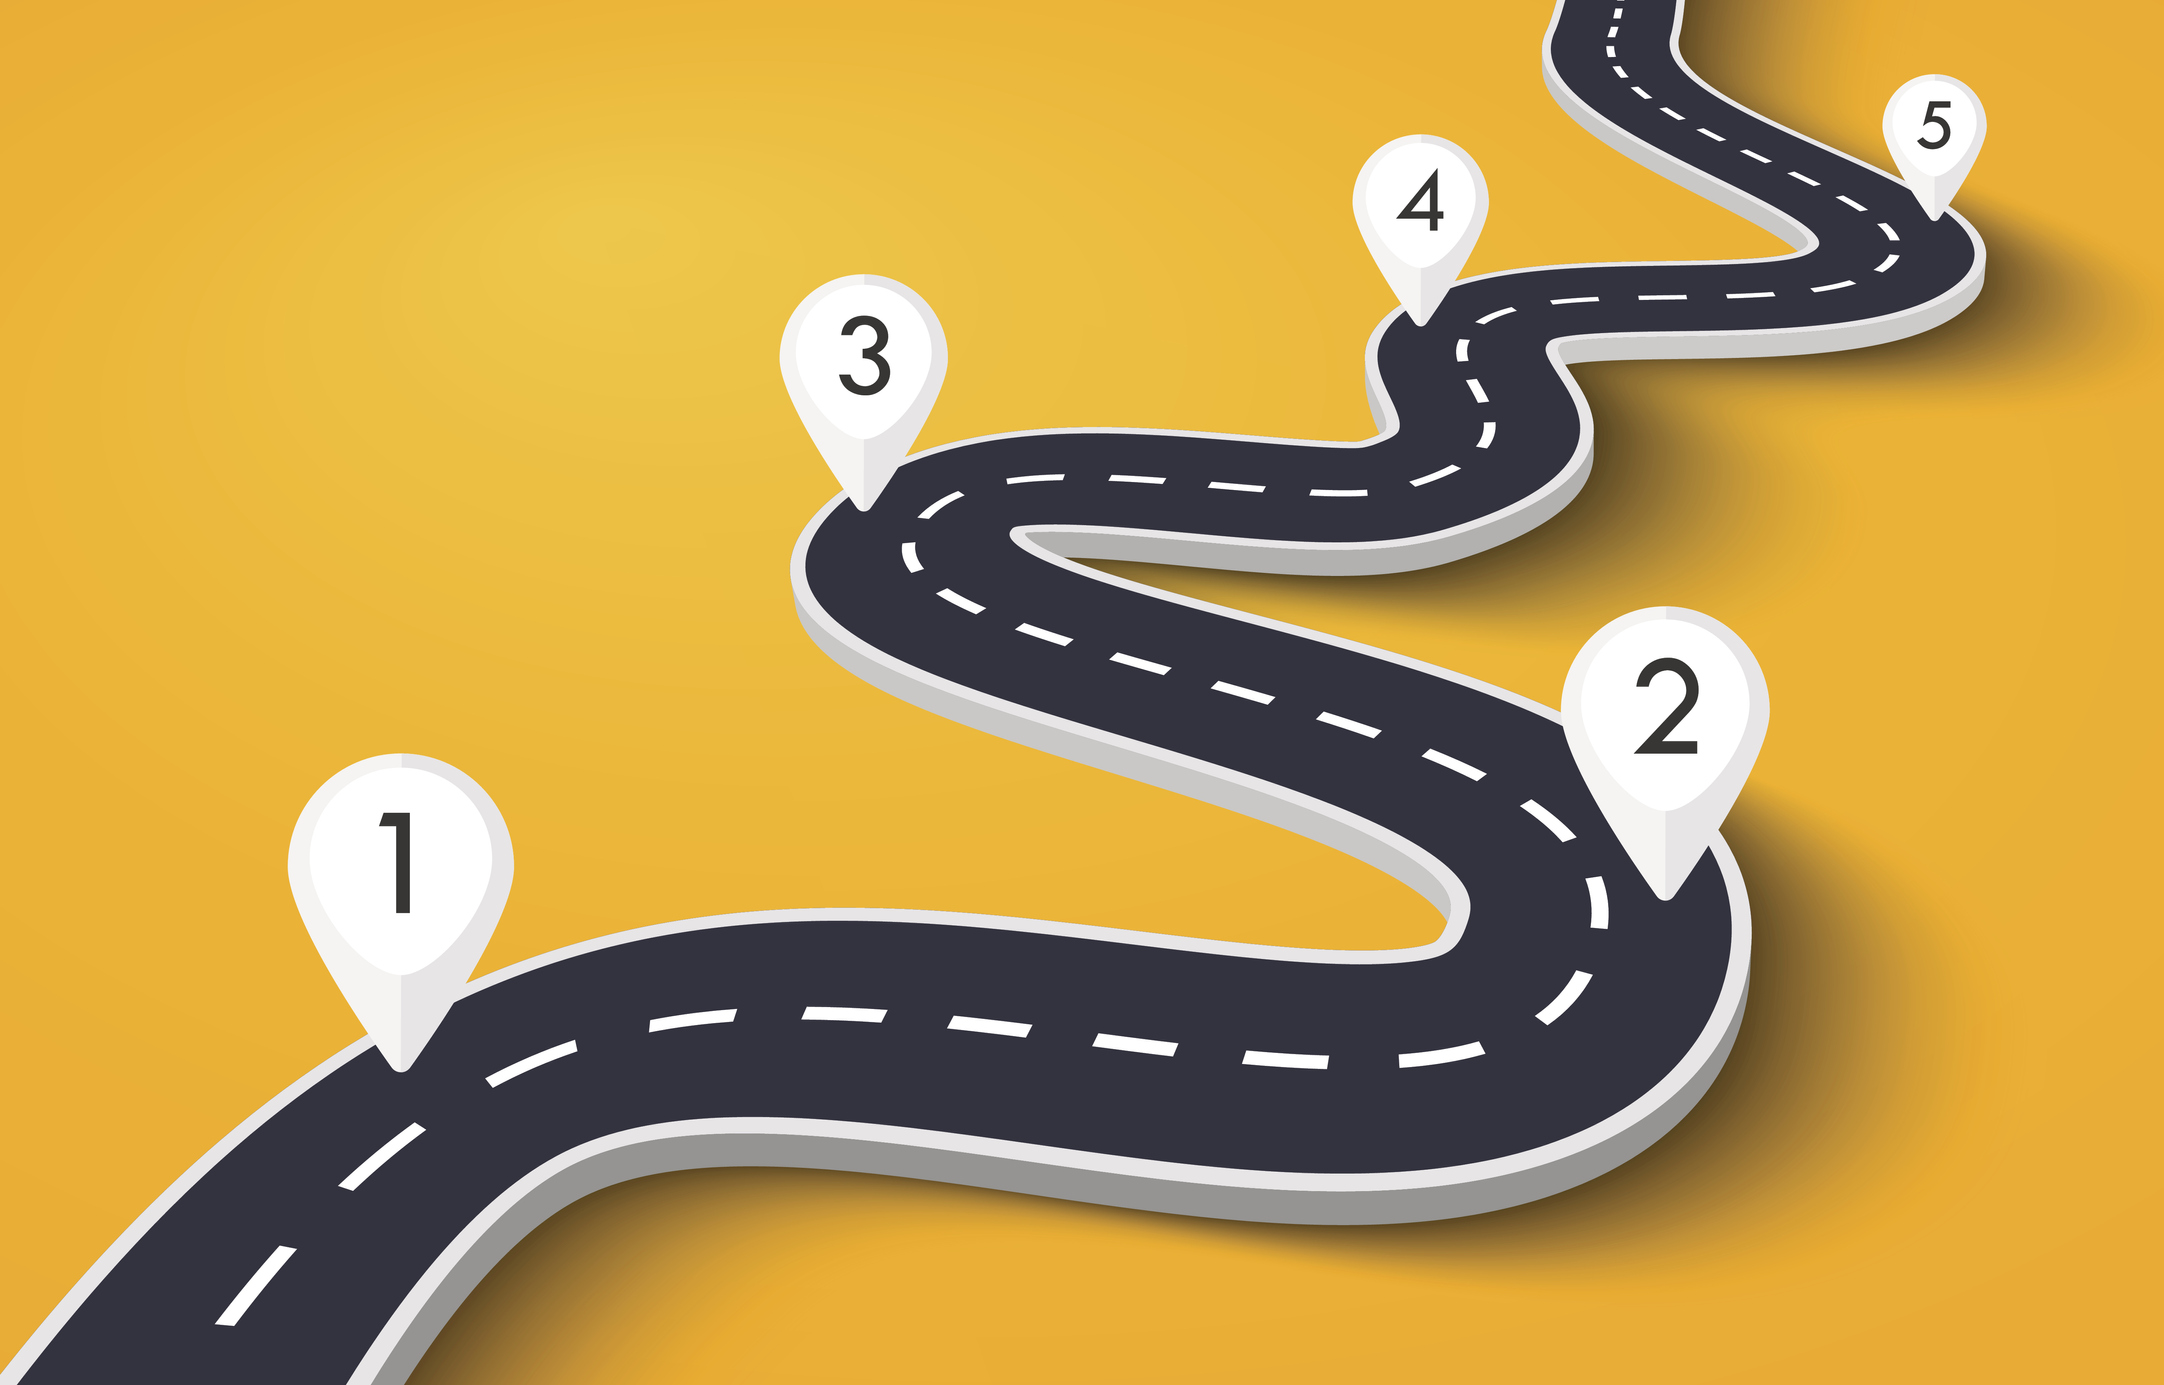 Illustration of stages along a road